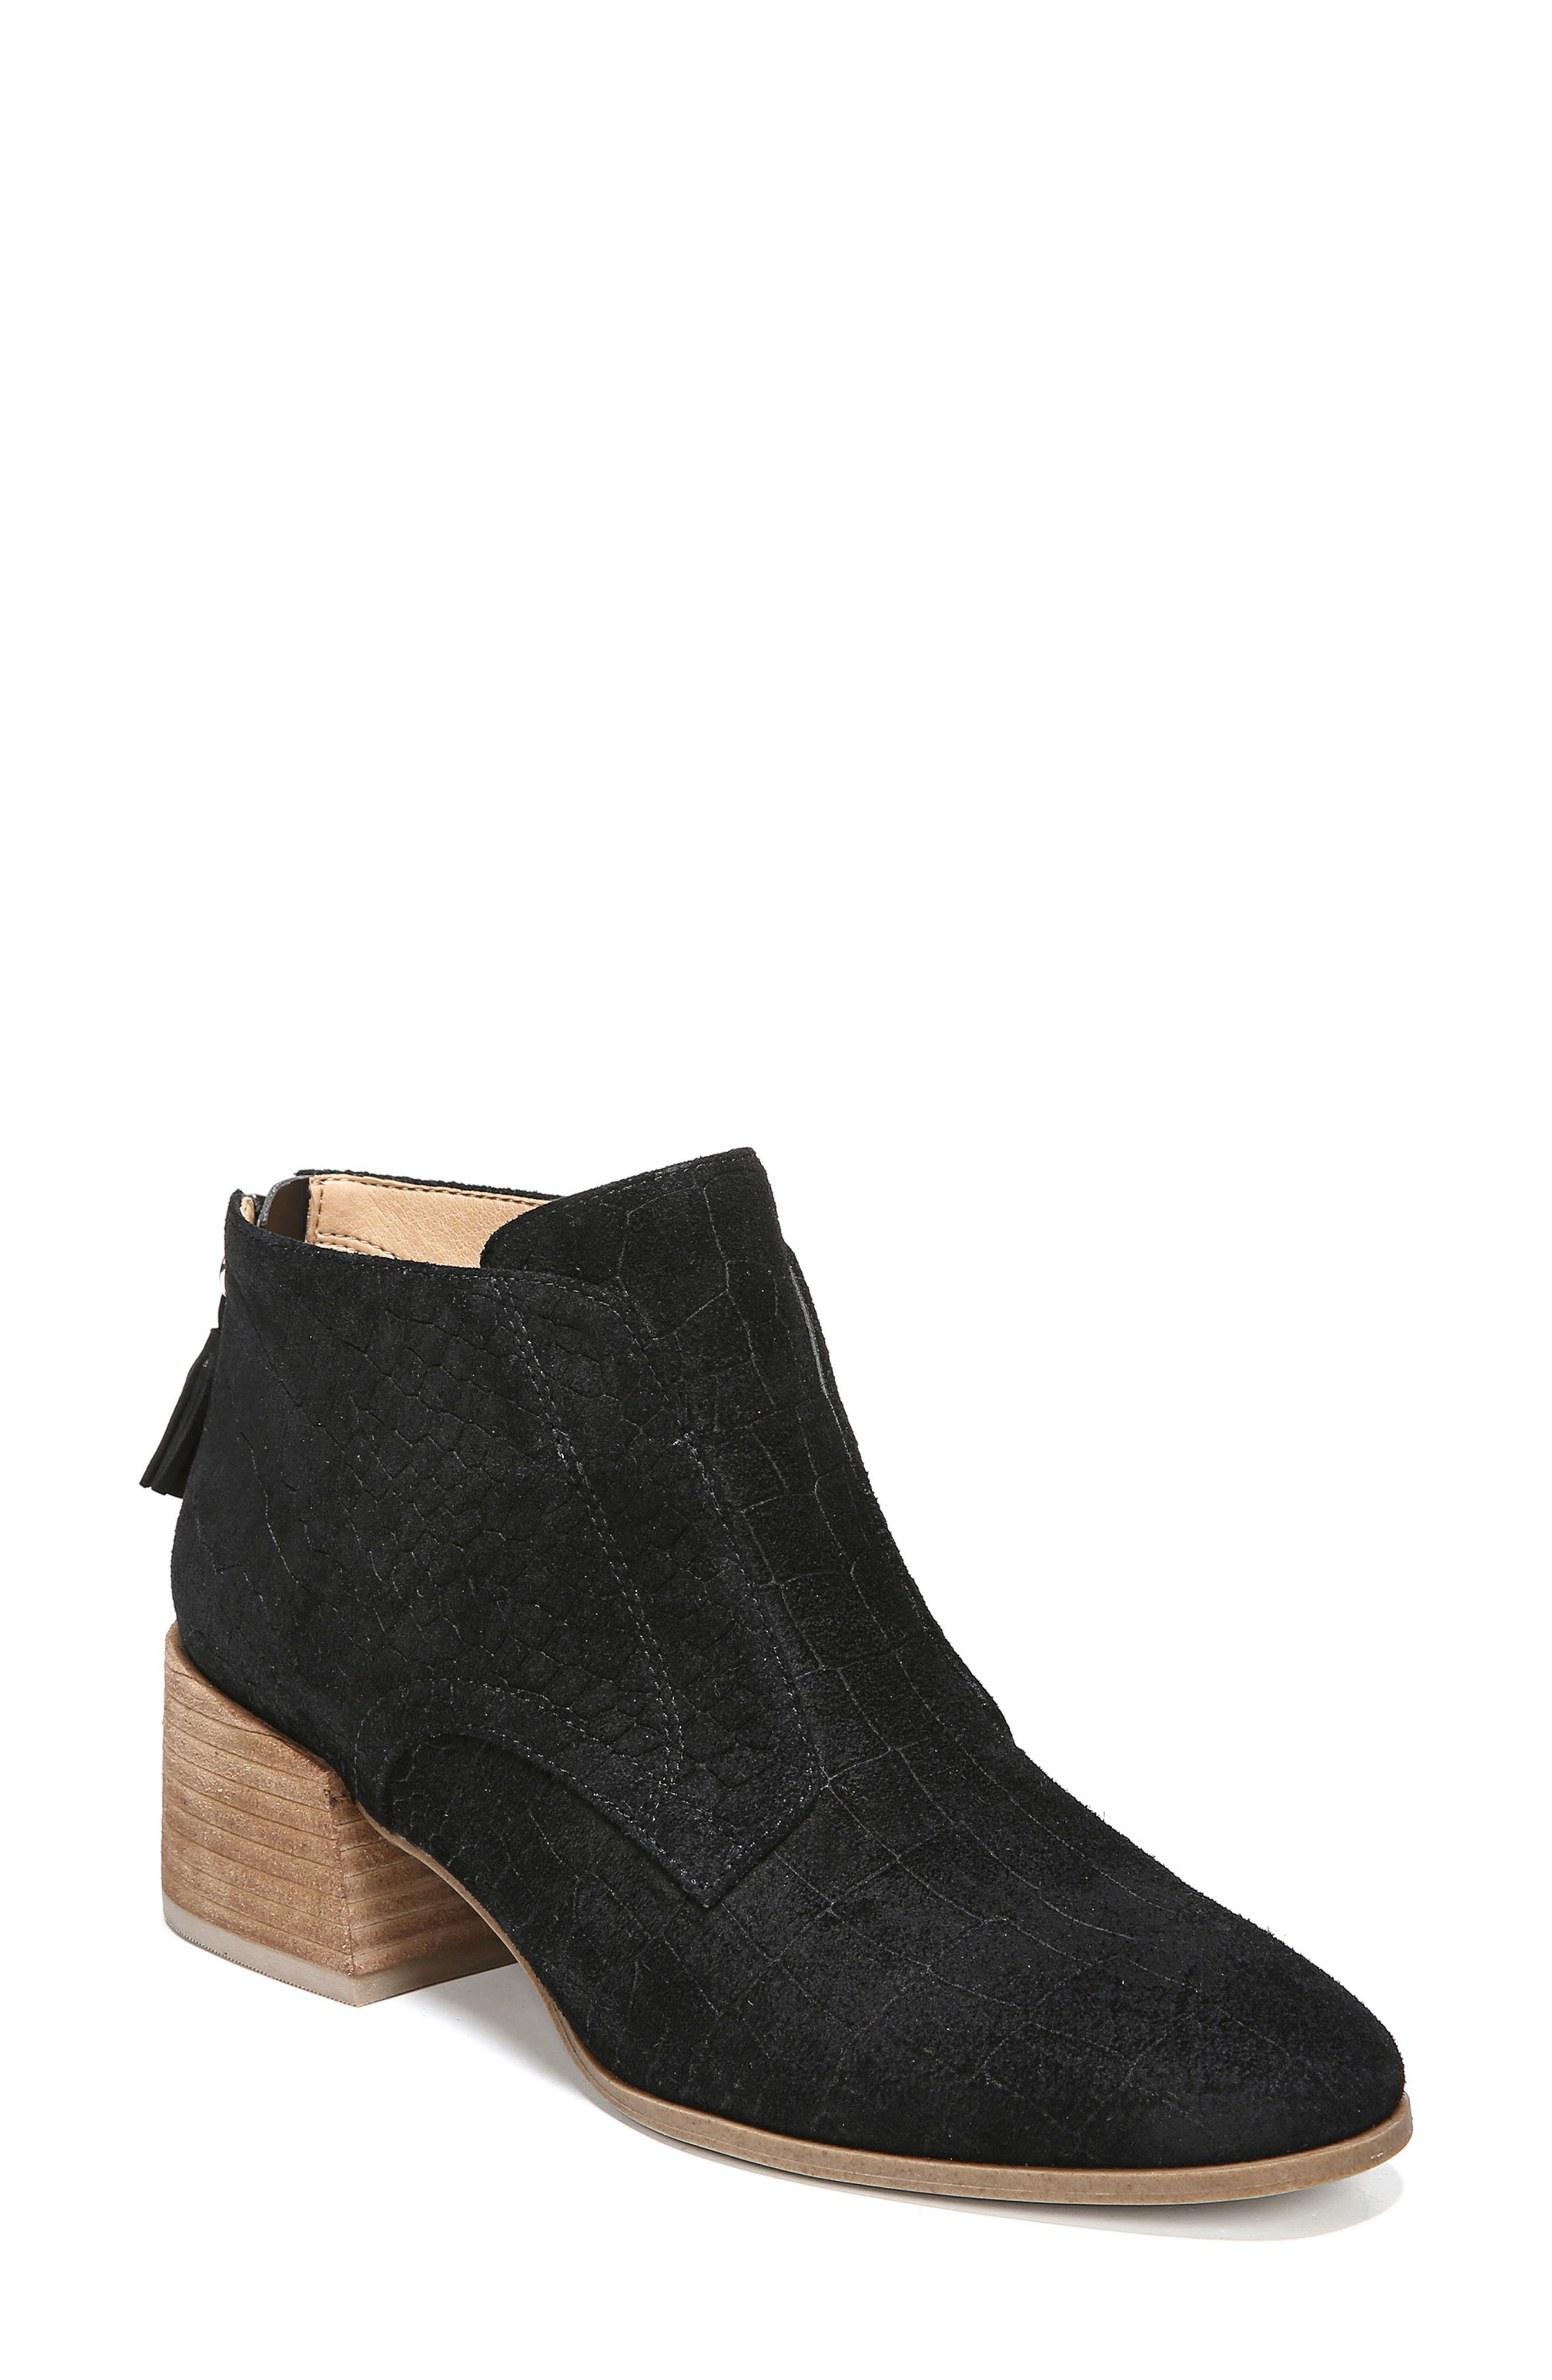 Bianca Bootie,                             Main thumbnail 1, color,                             BLACK LEATHER